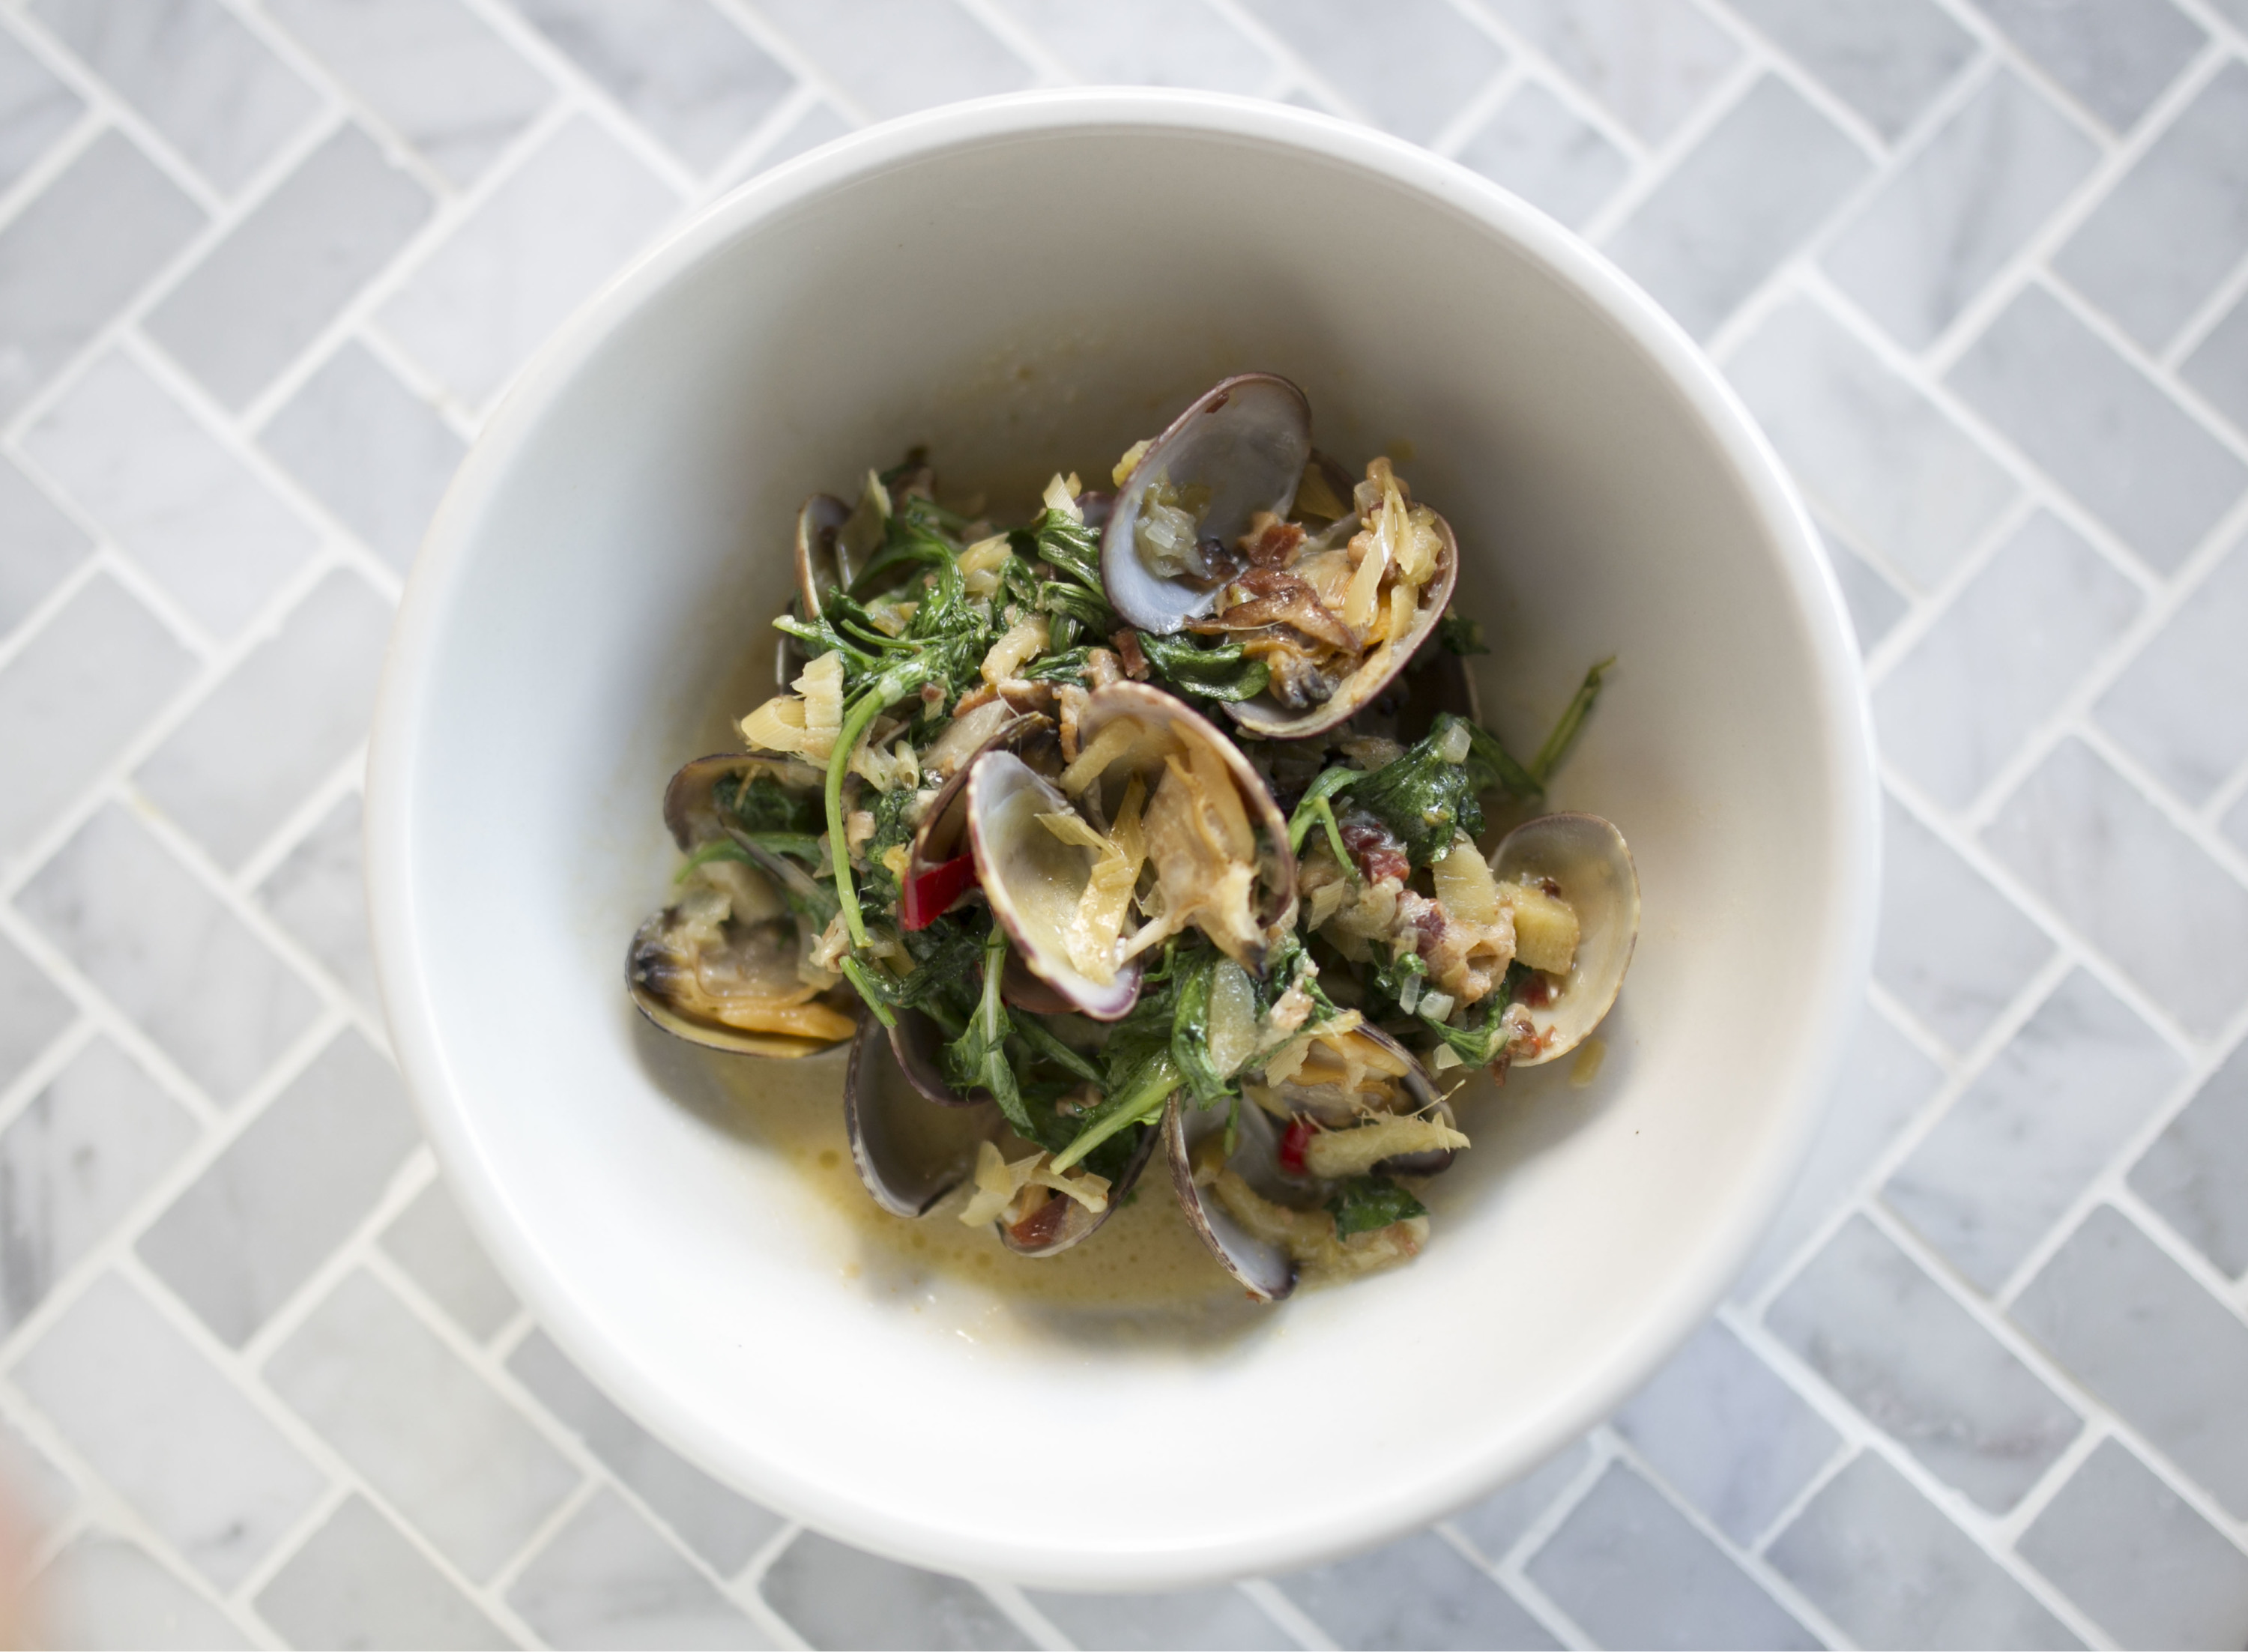 Steamed clams at Rider